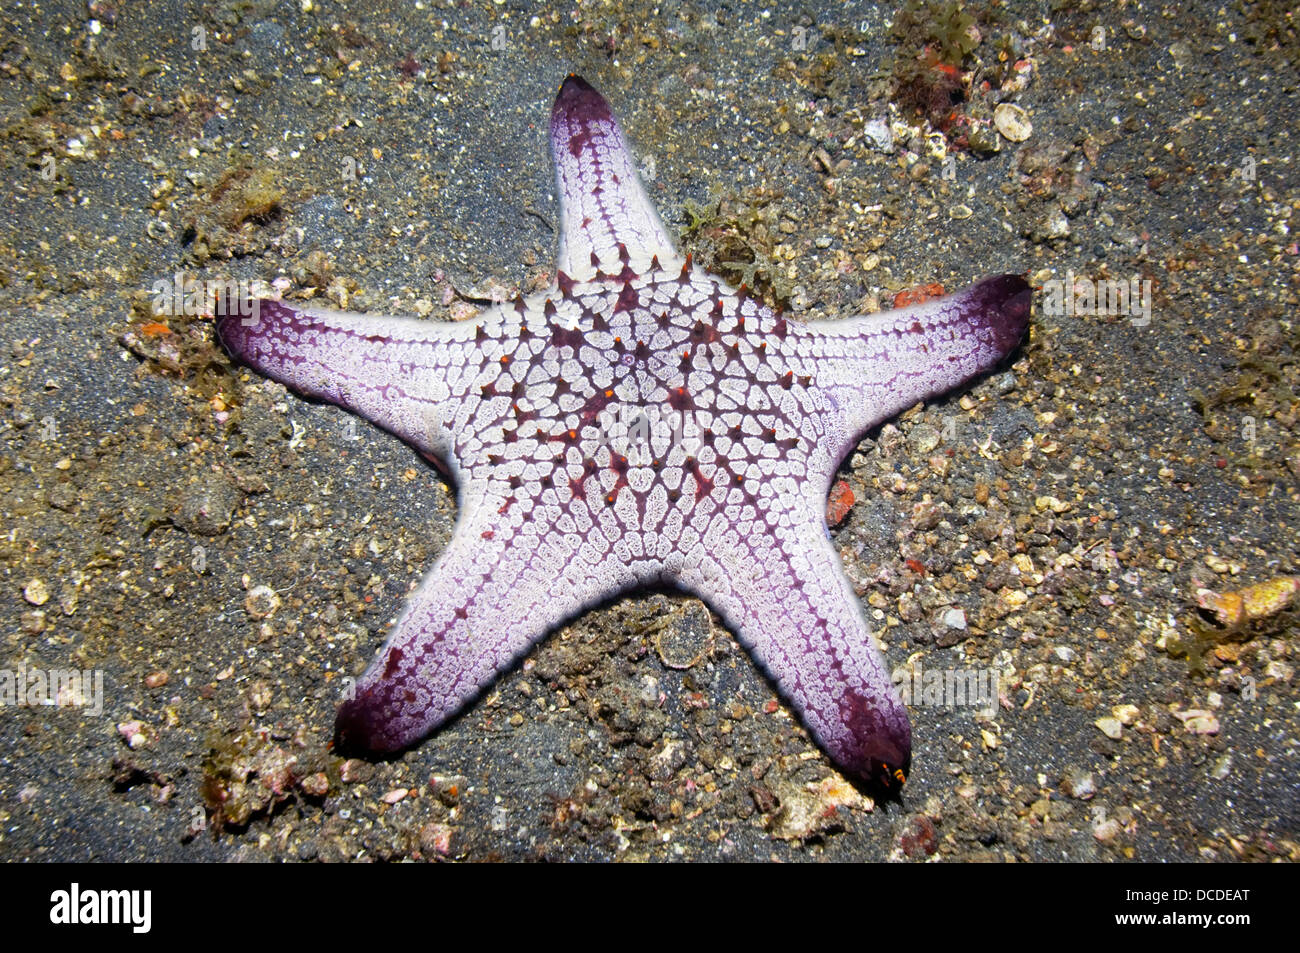 Starfish.  (Not identified).  Lembeh Strait, North Sulawesi, Indonesia. - Stock Image